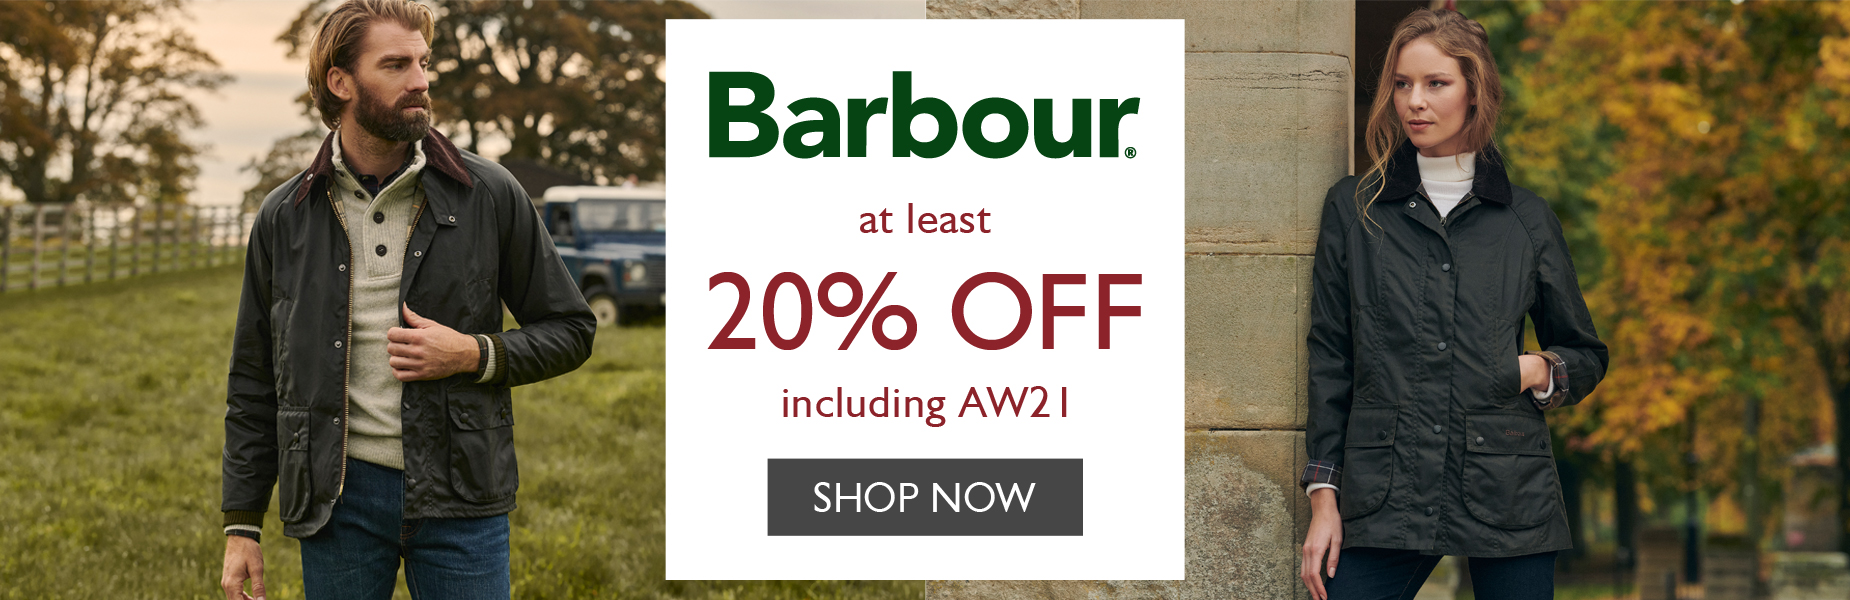 Barbour at least 20% OFF   Shop Now